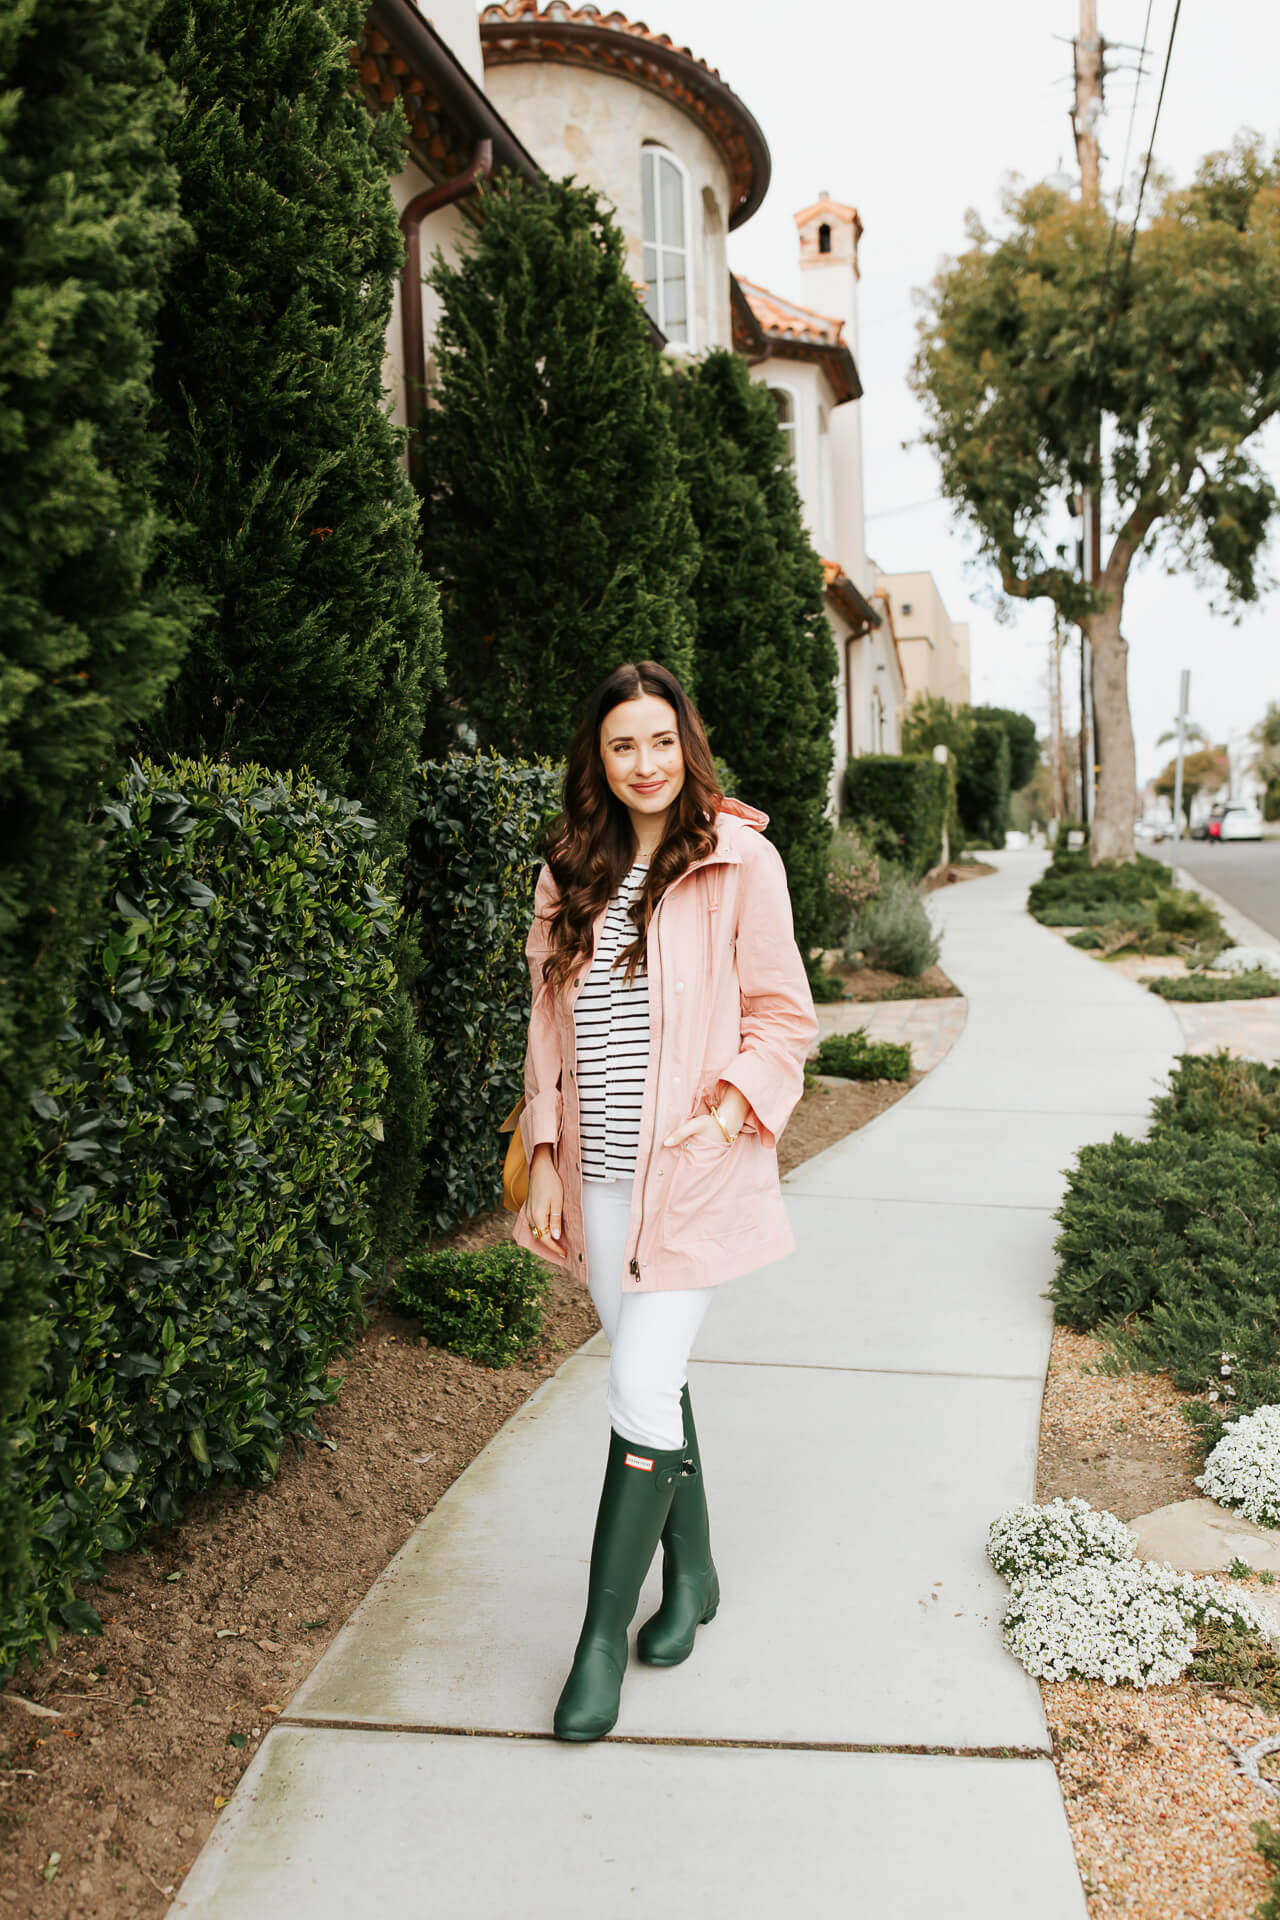 Rainy day outfit inspiration! - M Loves M @marmar